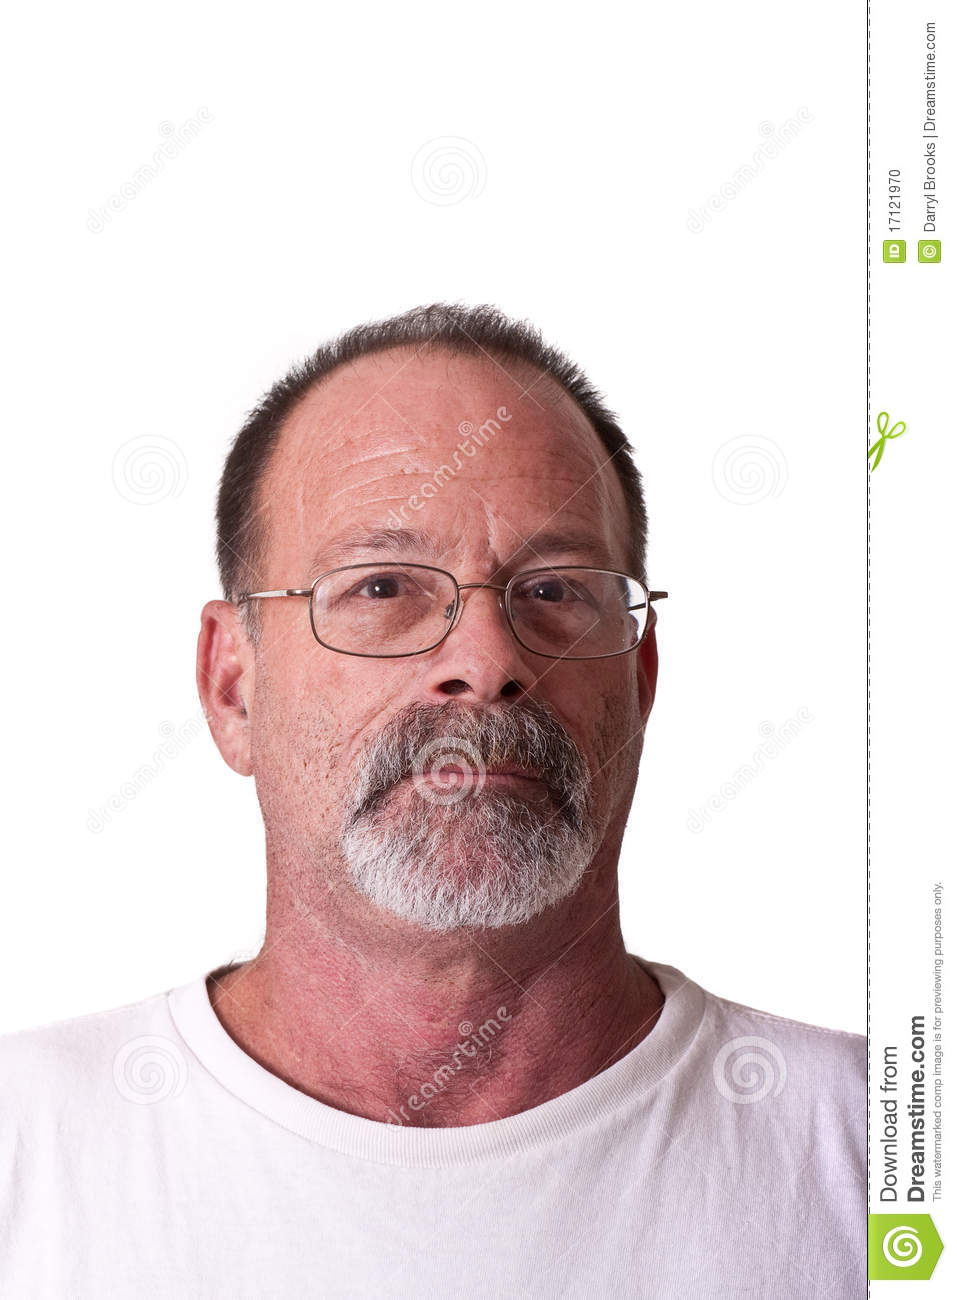 Old guy with glasses